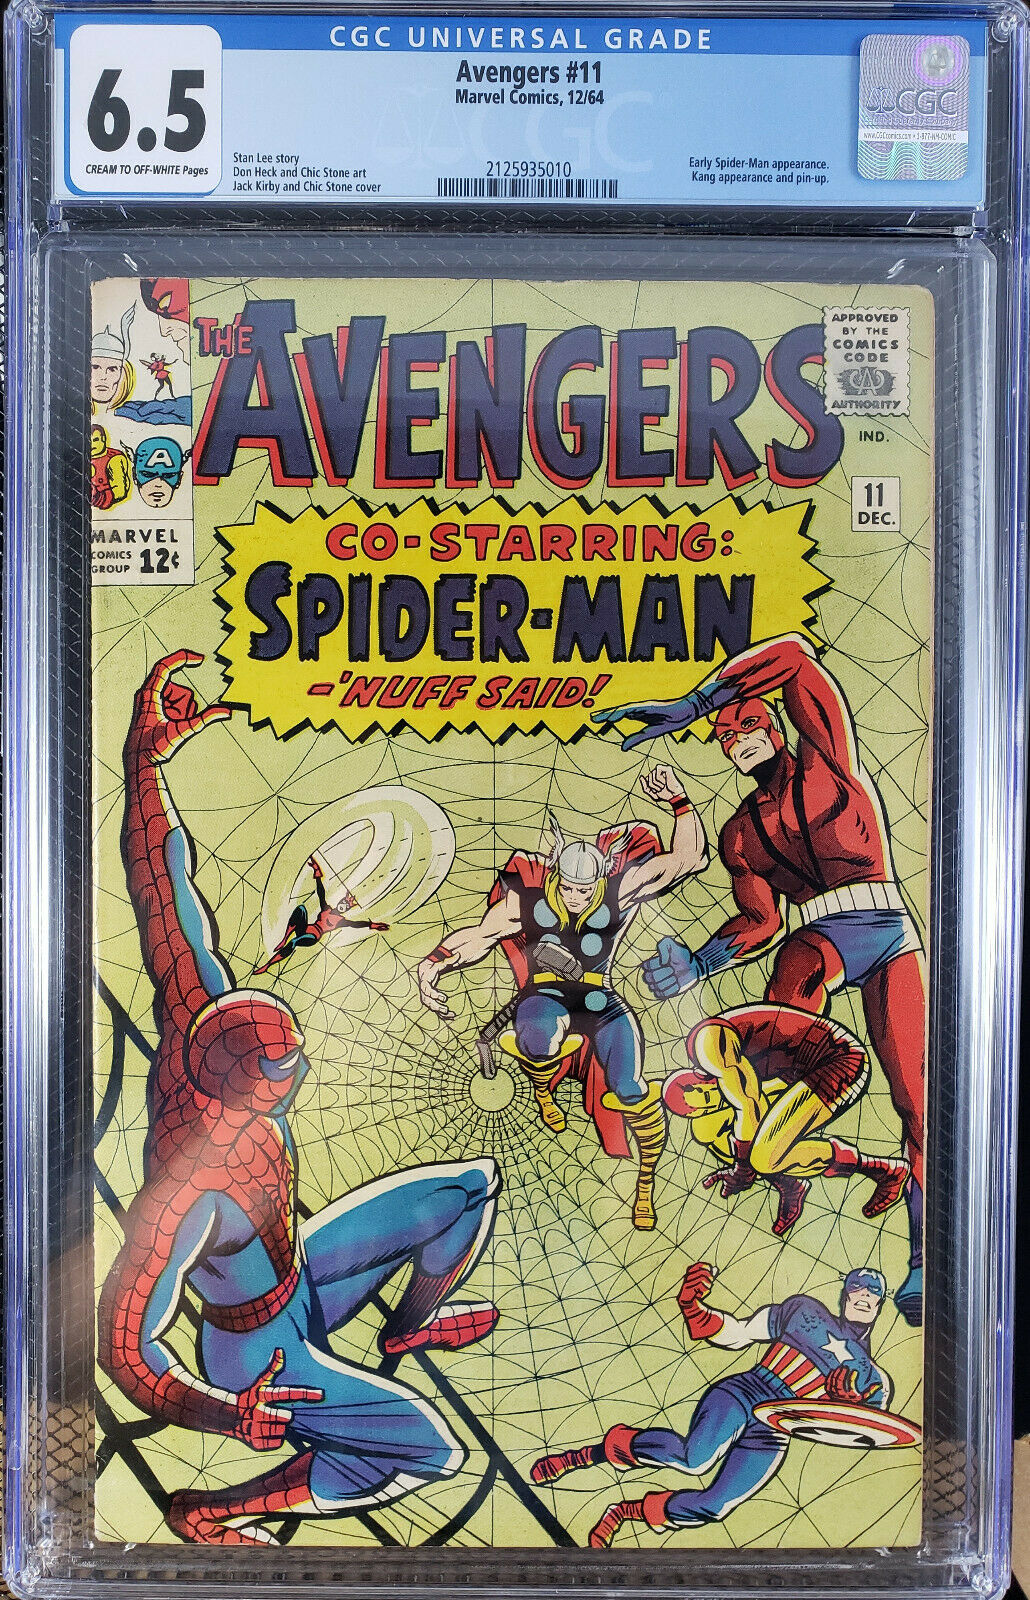 AVENGERS 11 CGC 6.5 Fine +  Co-Starring Spider-Man   Cheap